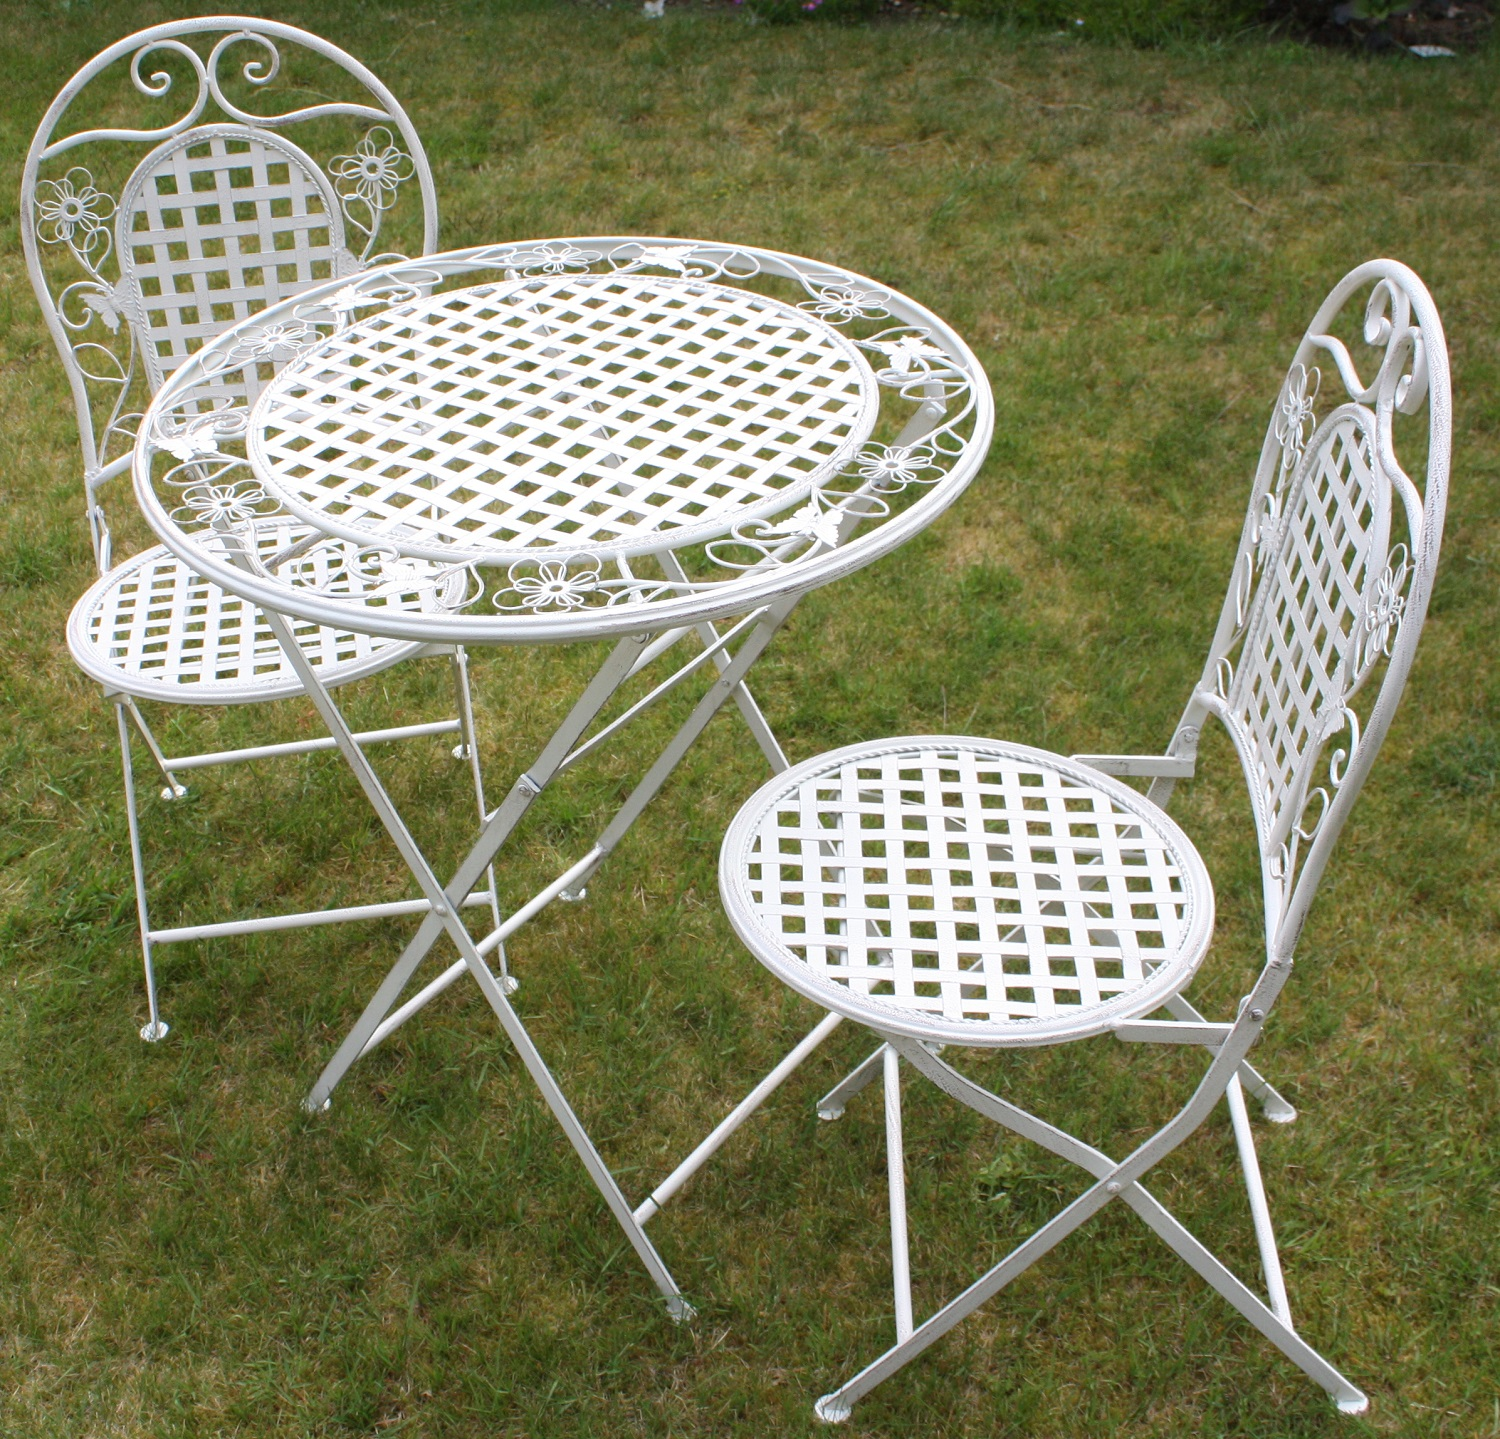 White floral outdoor folding metal round table and chairs garden patio furniture ebay - Garden furniture table and chairs ...